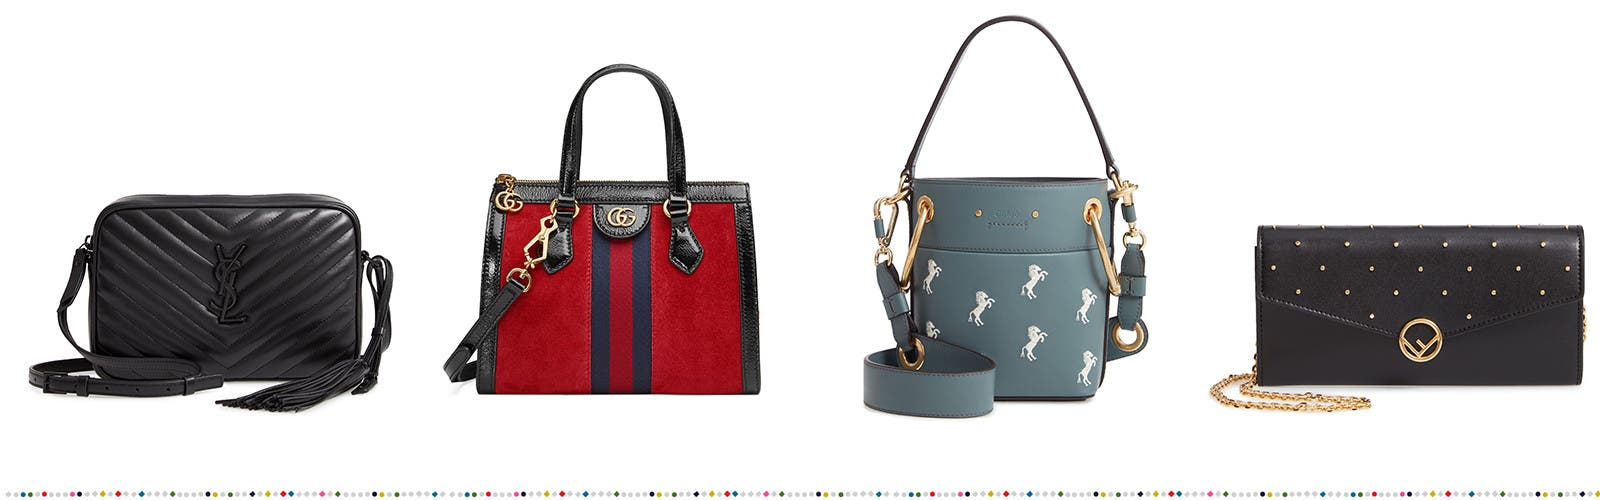 Designer crossbodies, totes, satchels and more handbags and wallets.